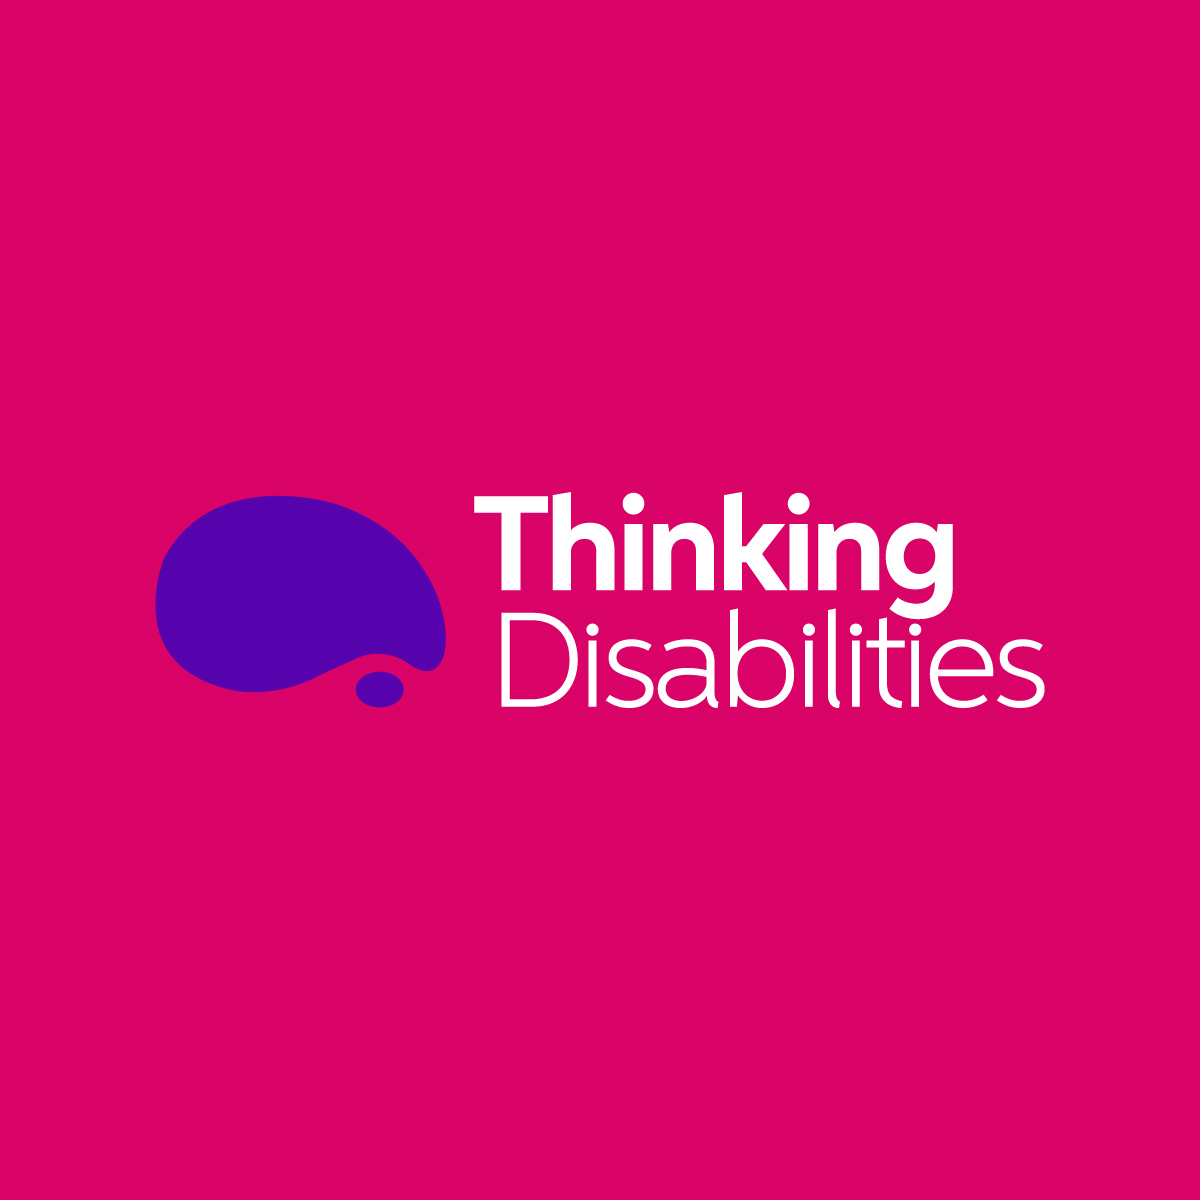 Cover image: Thinking Disabilities